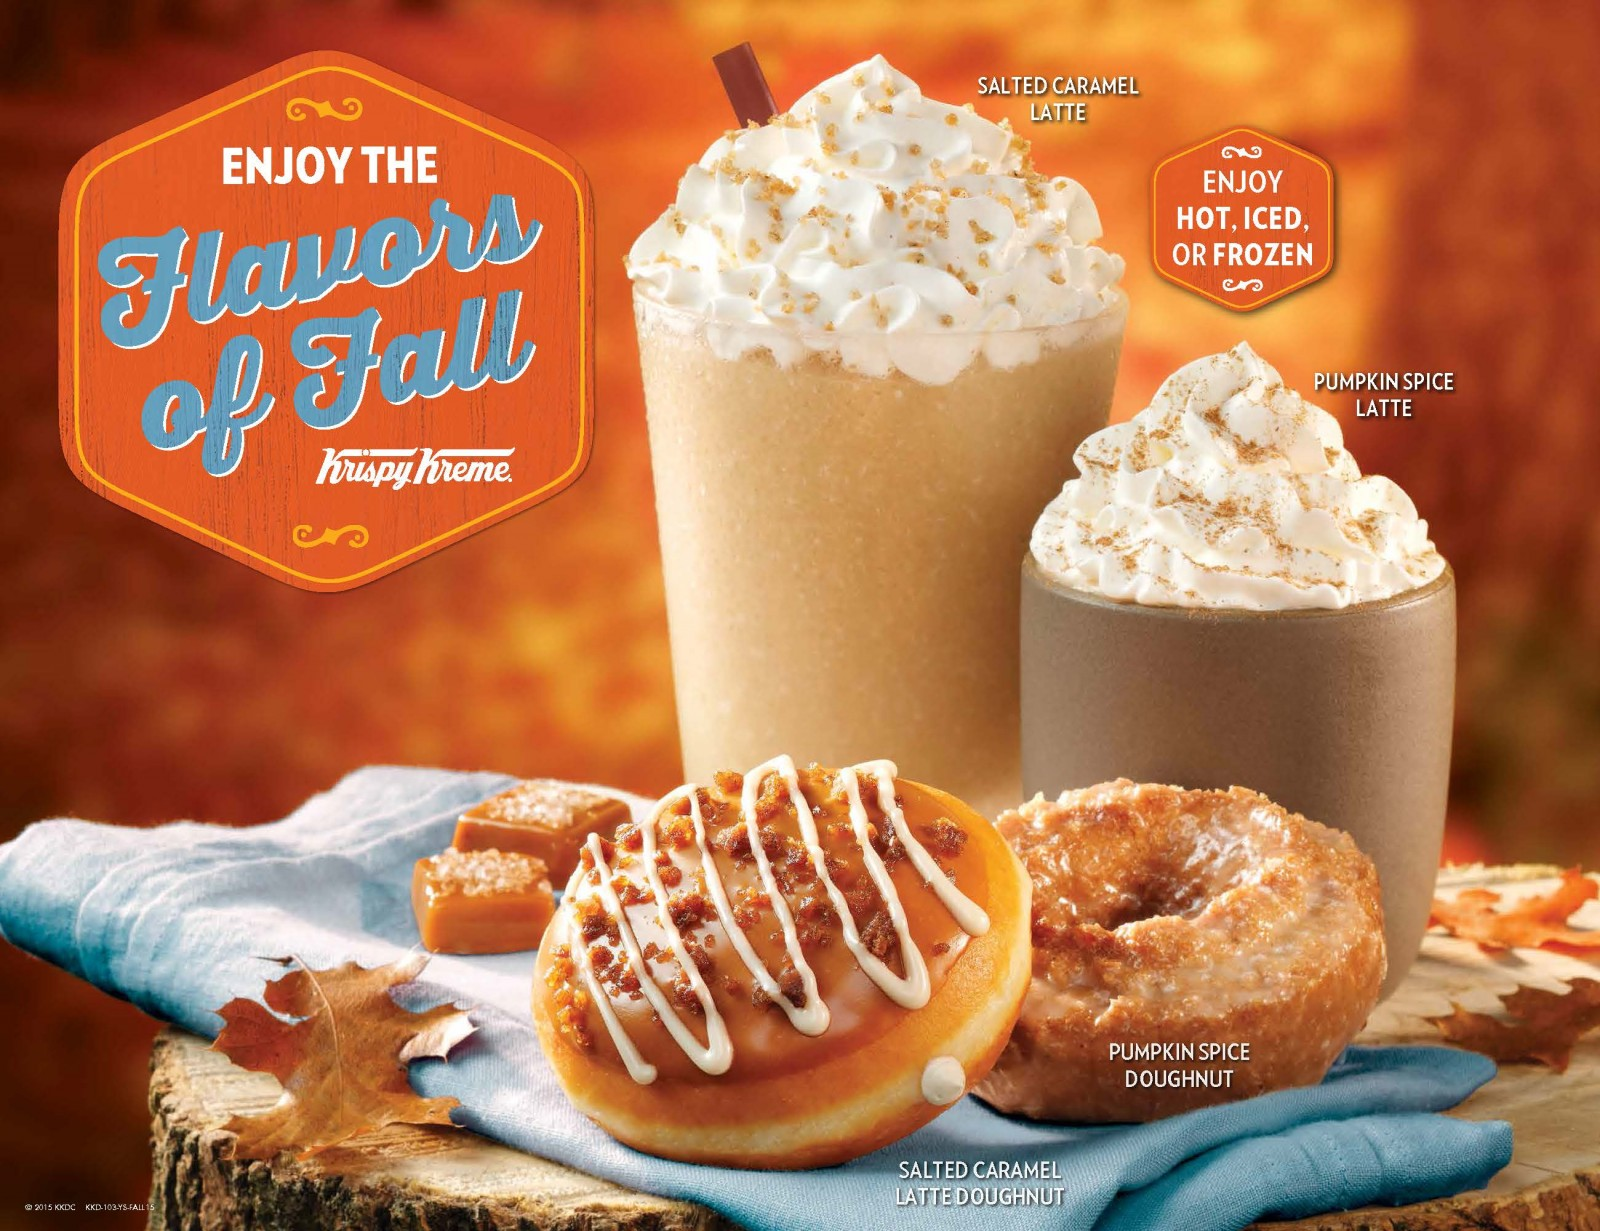 Krispy Kreme Flavors of Fall 2015